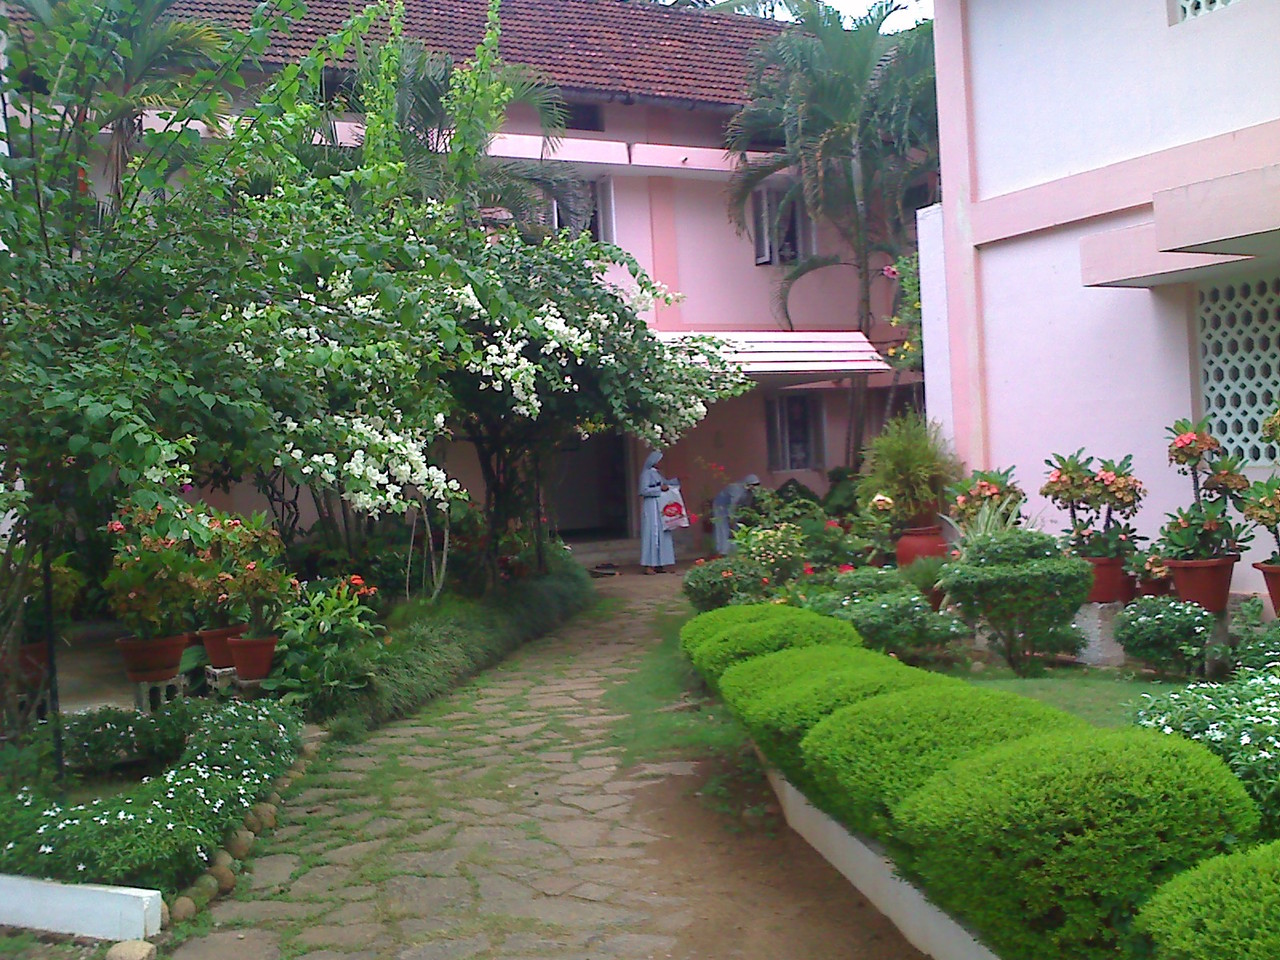 Prima Casa in India (Mundamveli - Kerala, India)